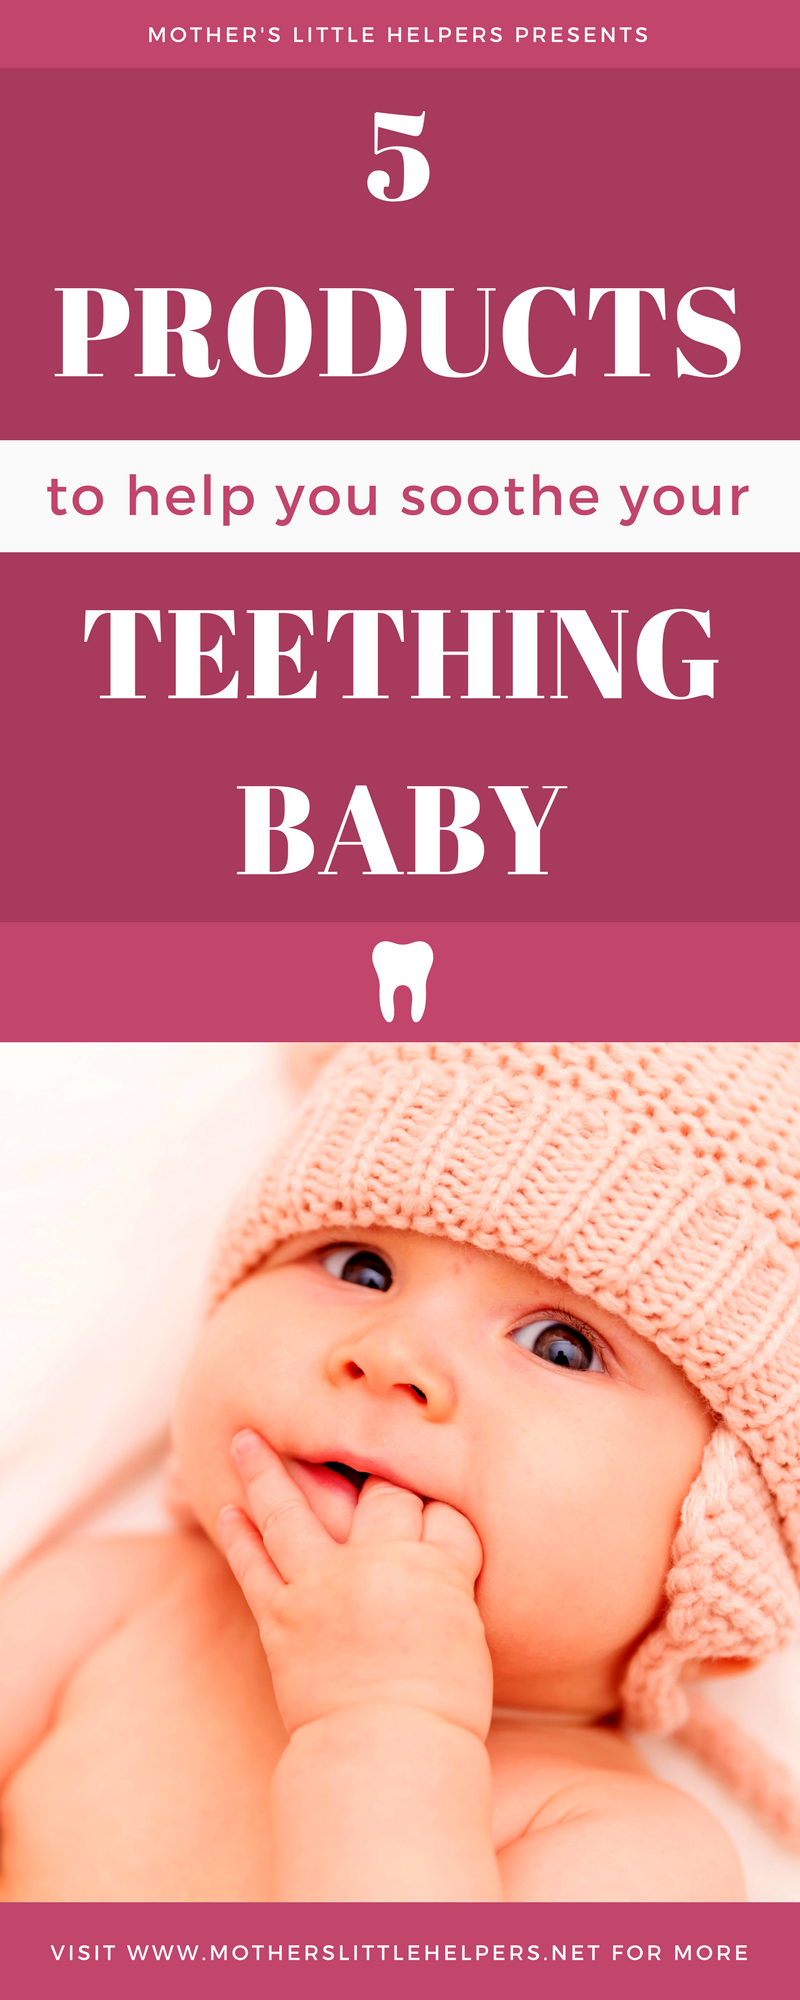 TEETHING HELPERS - 5 Products That Will Help You Soothe Your Teething Baby | Teething | Teething Remedies | Teething Remedies for Babies | Baby is irritable and unhappy | Products to Make Teething Easier | Teething Toy | Teething Gel | Teething Drops | Natural Teething Remedies | Teething Oil | Baltic Amber Teething Necklace | What to do about teething | Natural Remedies to Relieve Teething Pain |